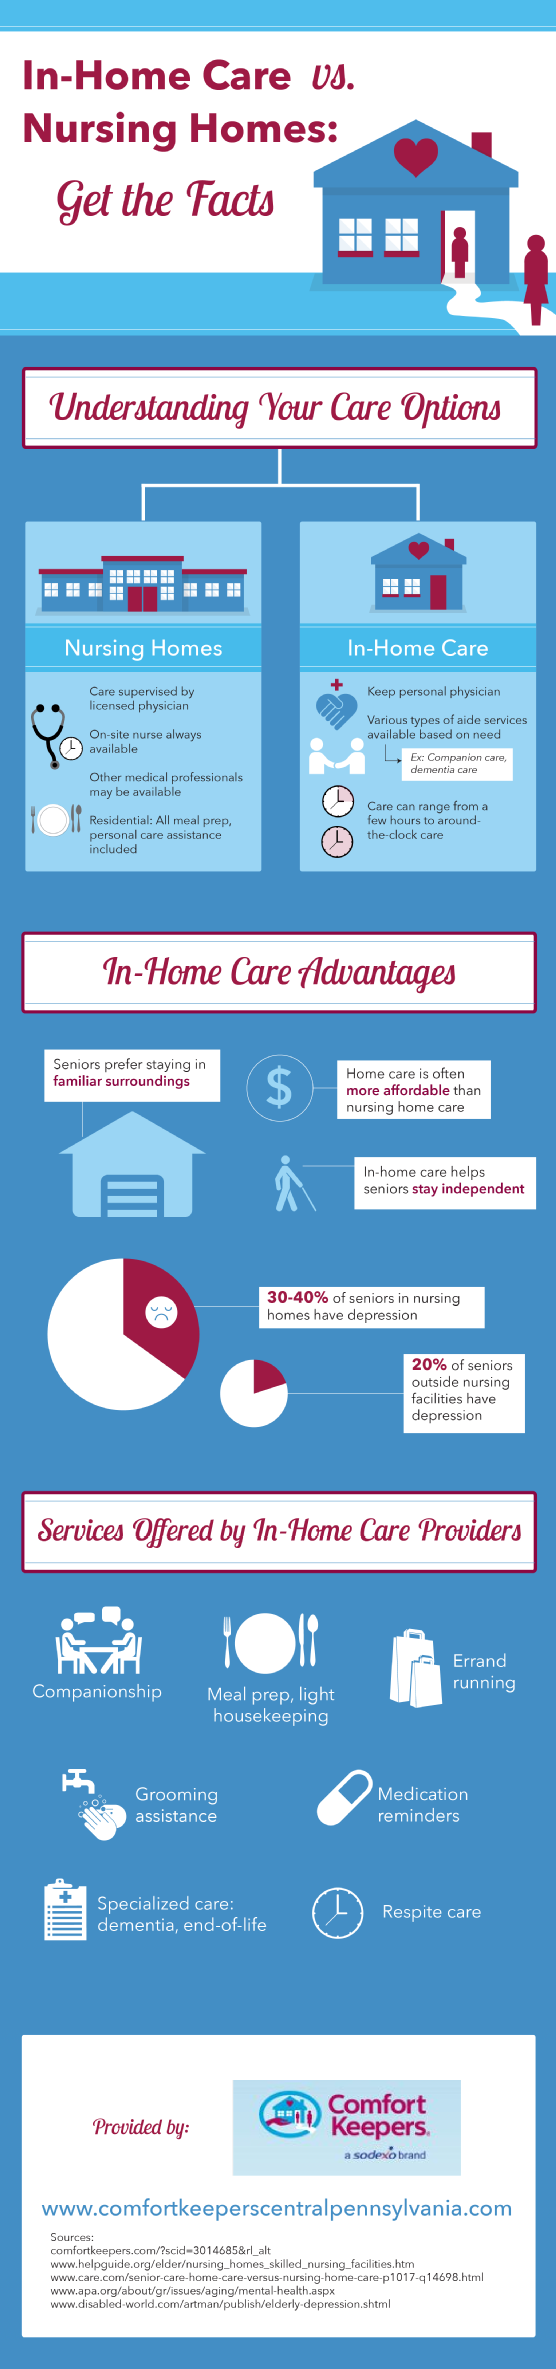 inhome-care-vs-nursing-homes-get-the-facts_526193cdcc880